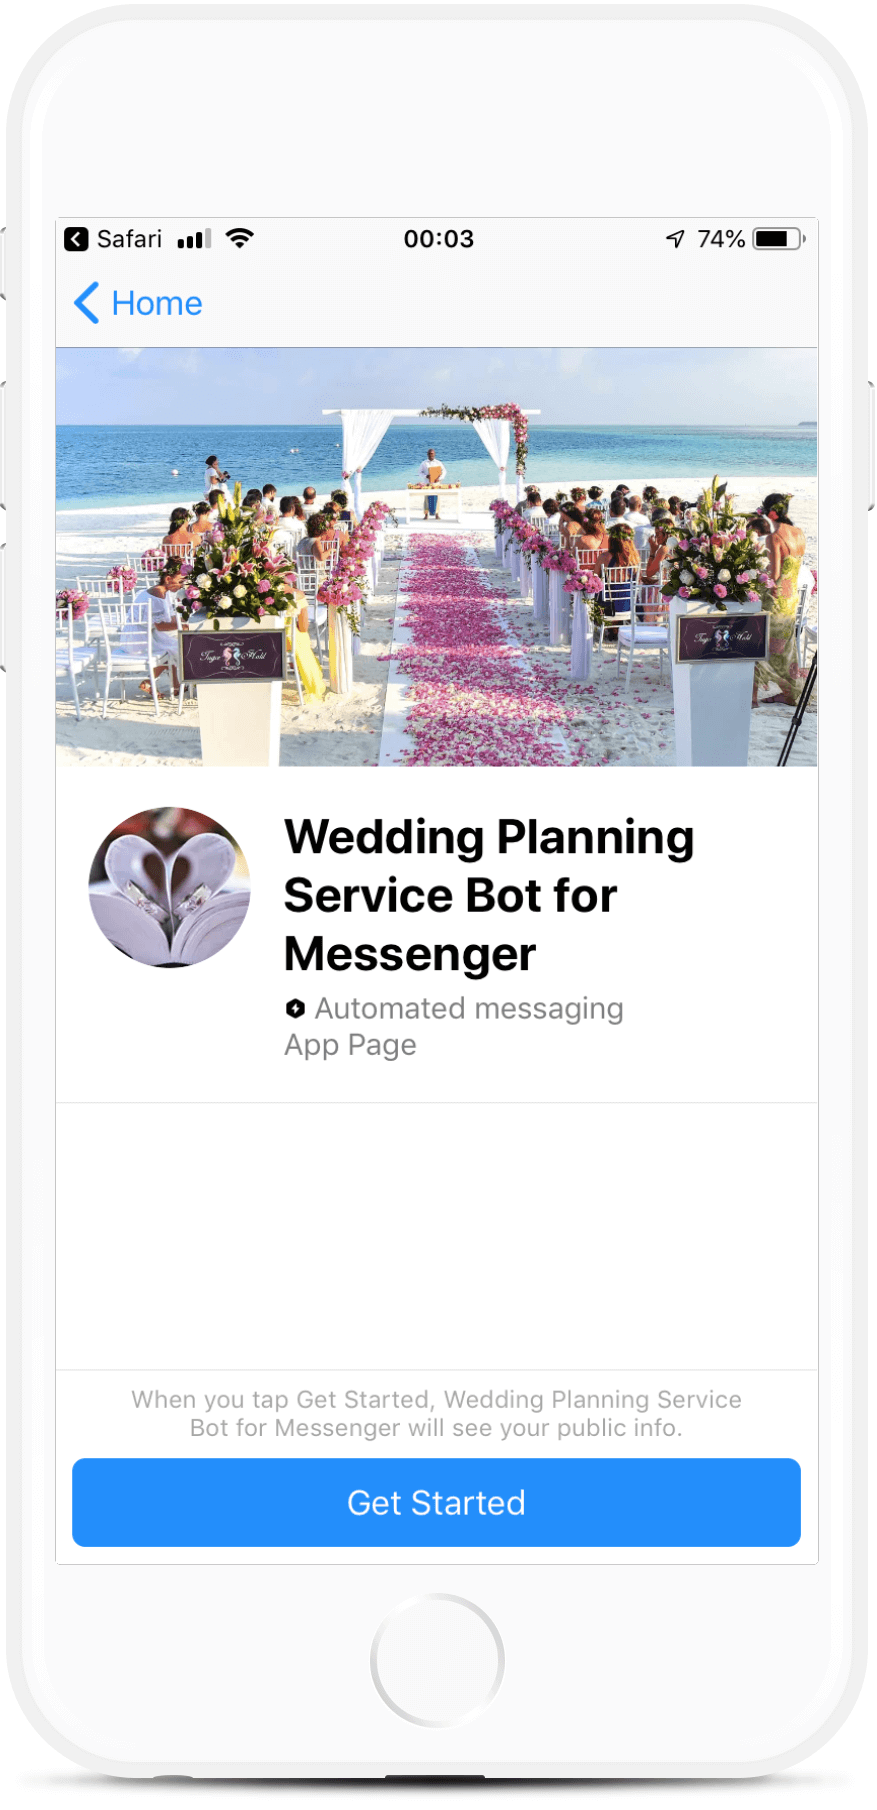 Wedding Planning Service Messenger bot screenshot